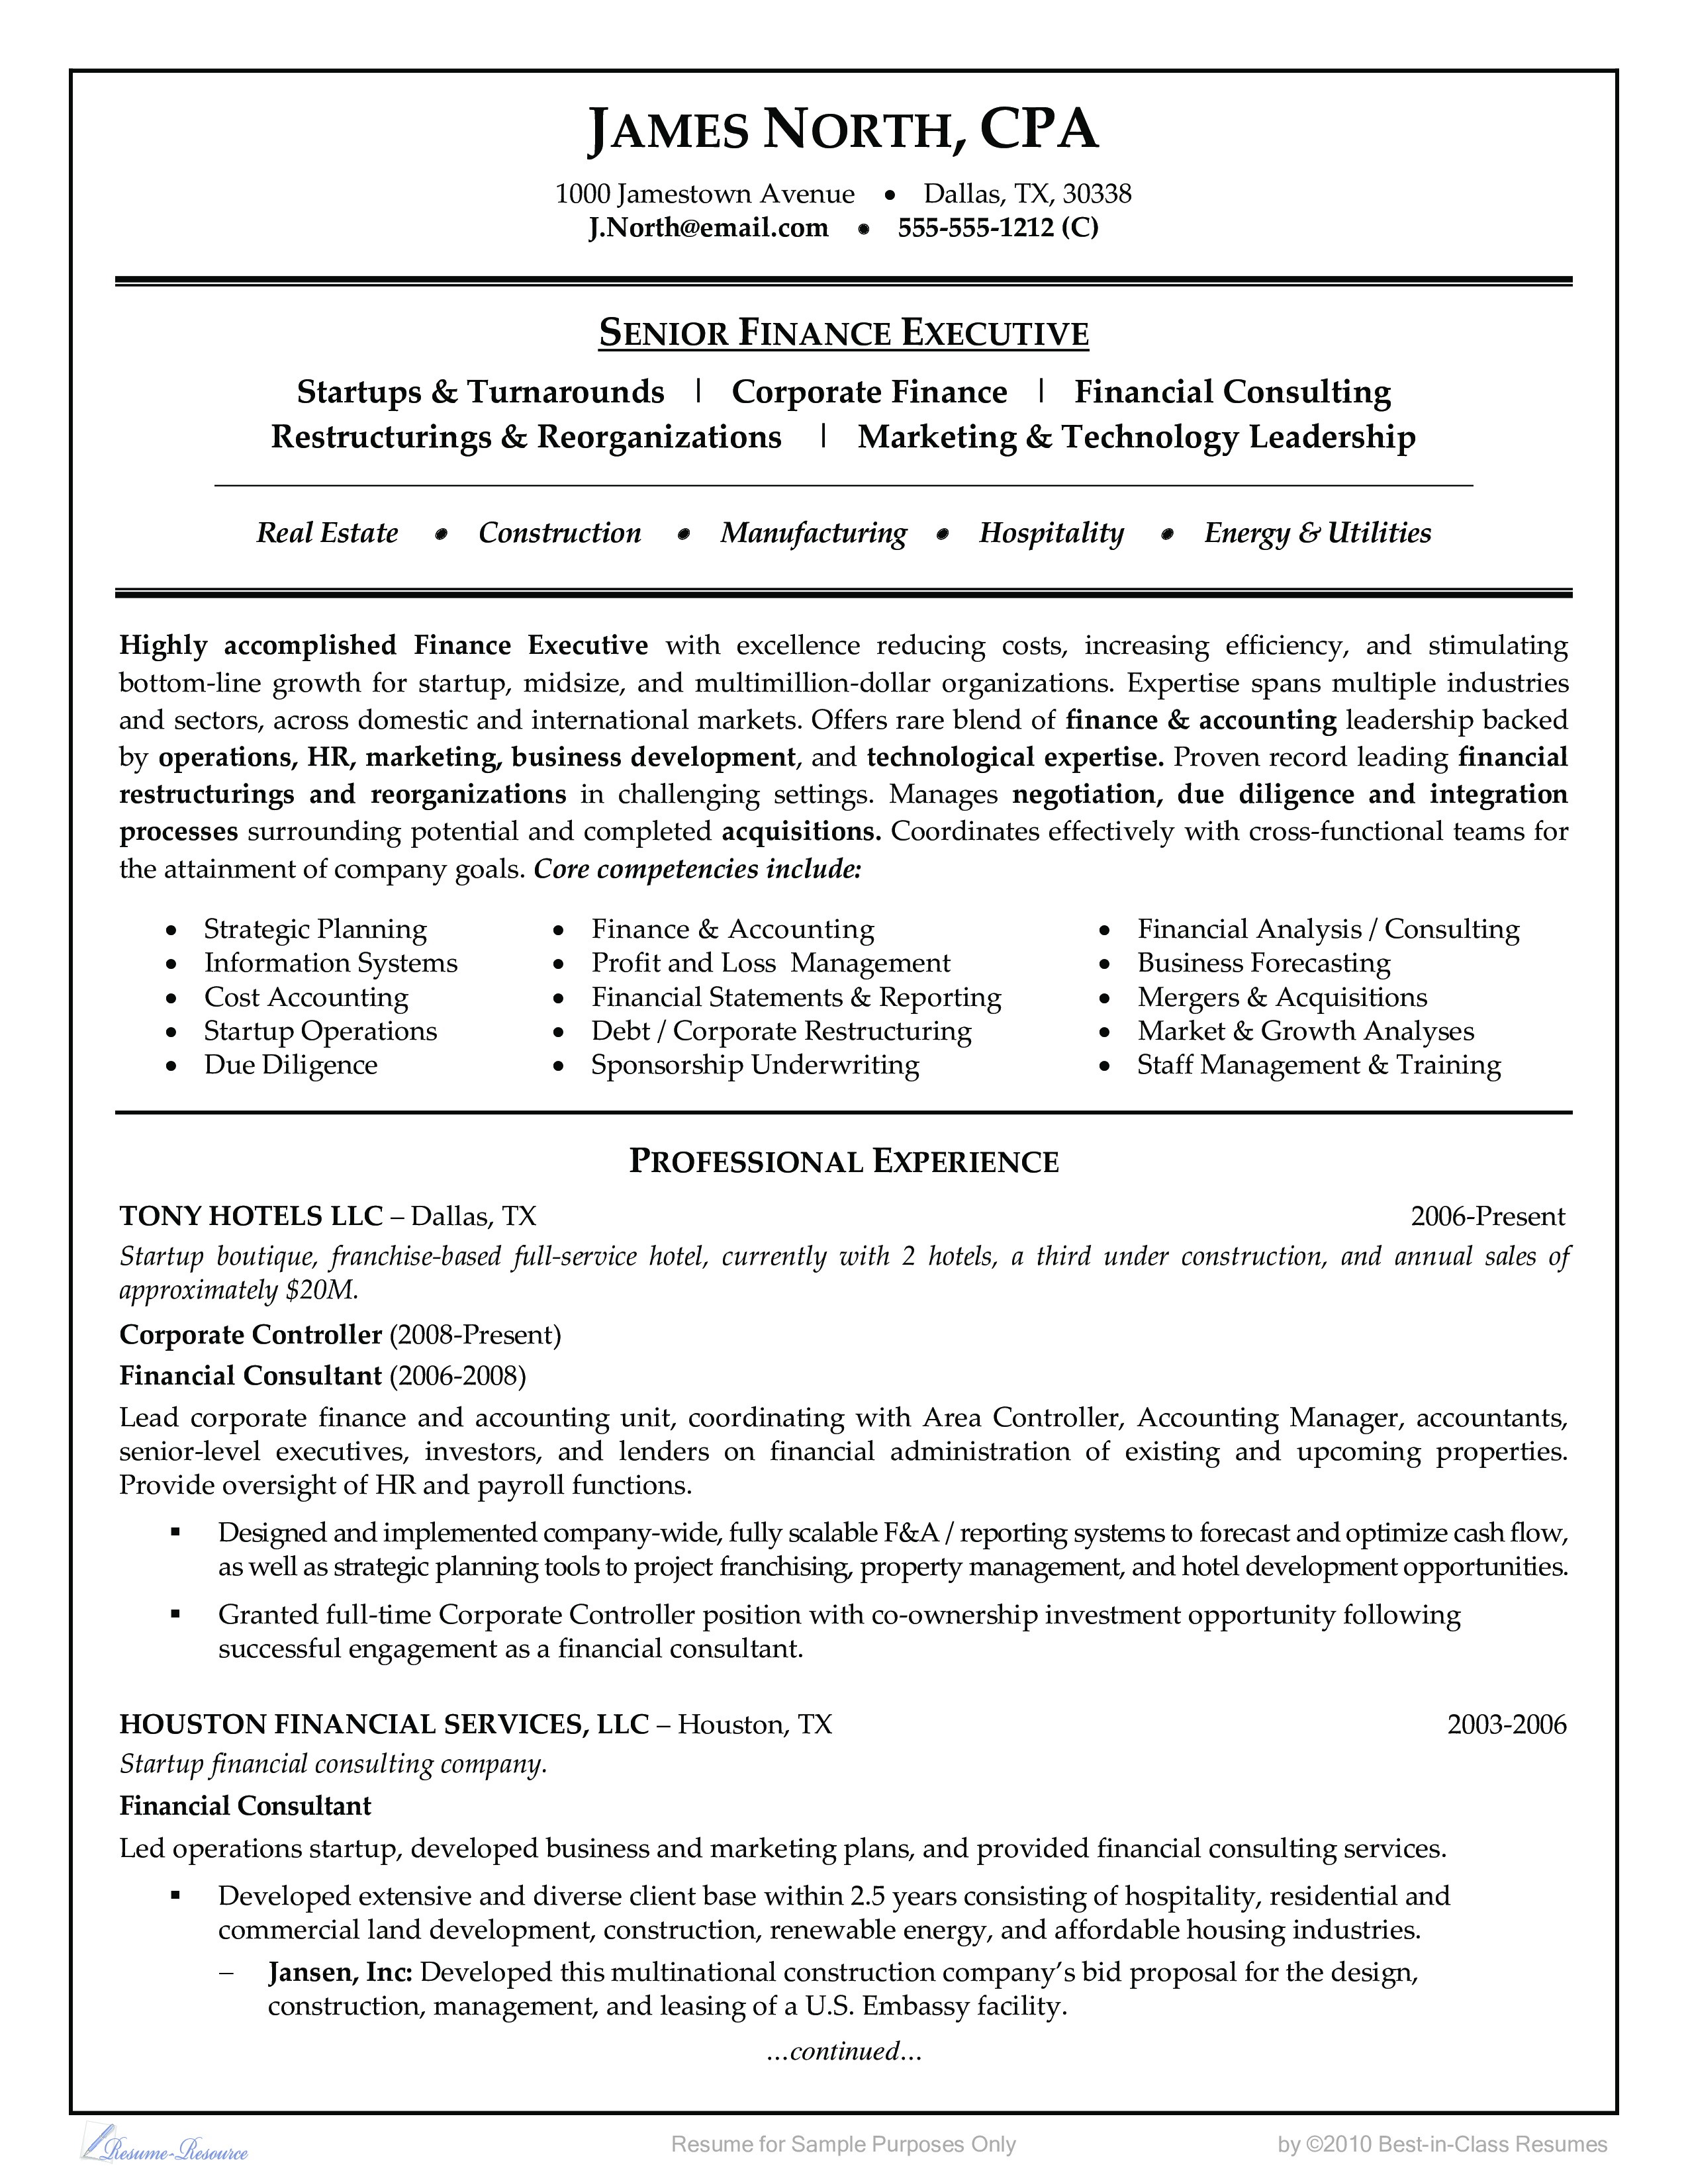 Financial Consultant Resume Example Business Resume Examples Resume Examples Sample Resume Teaching Resume